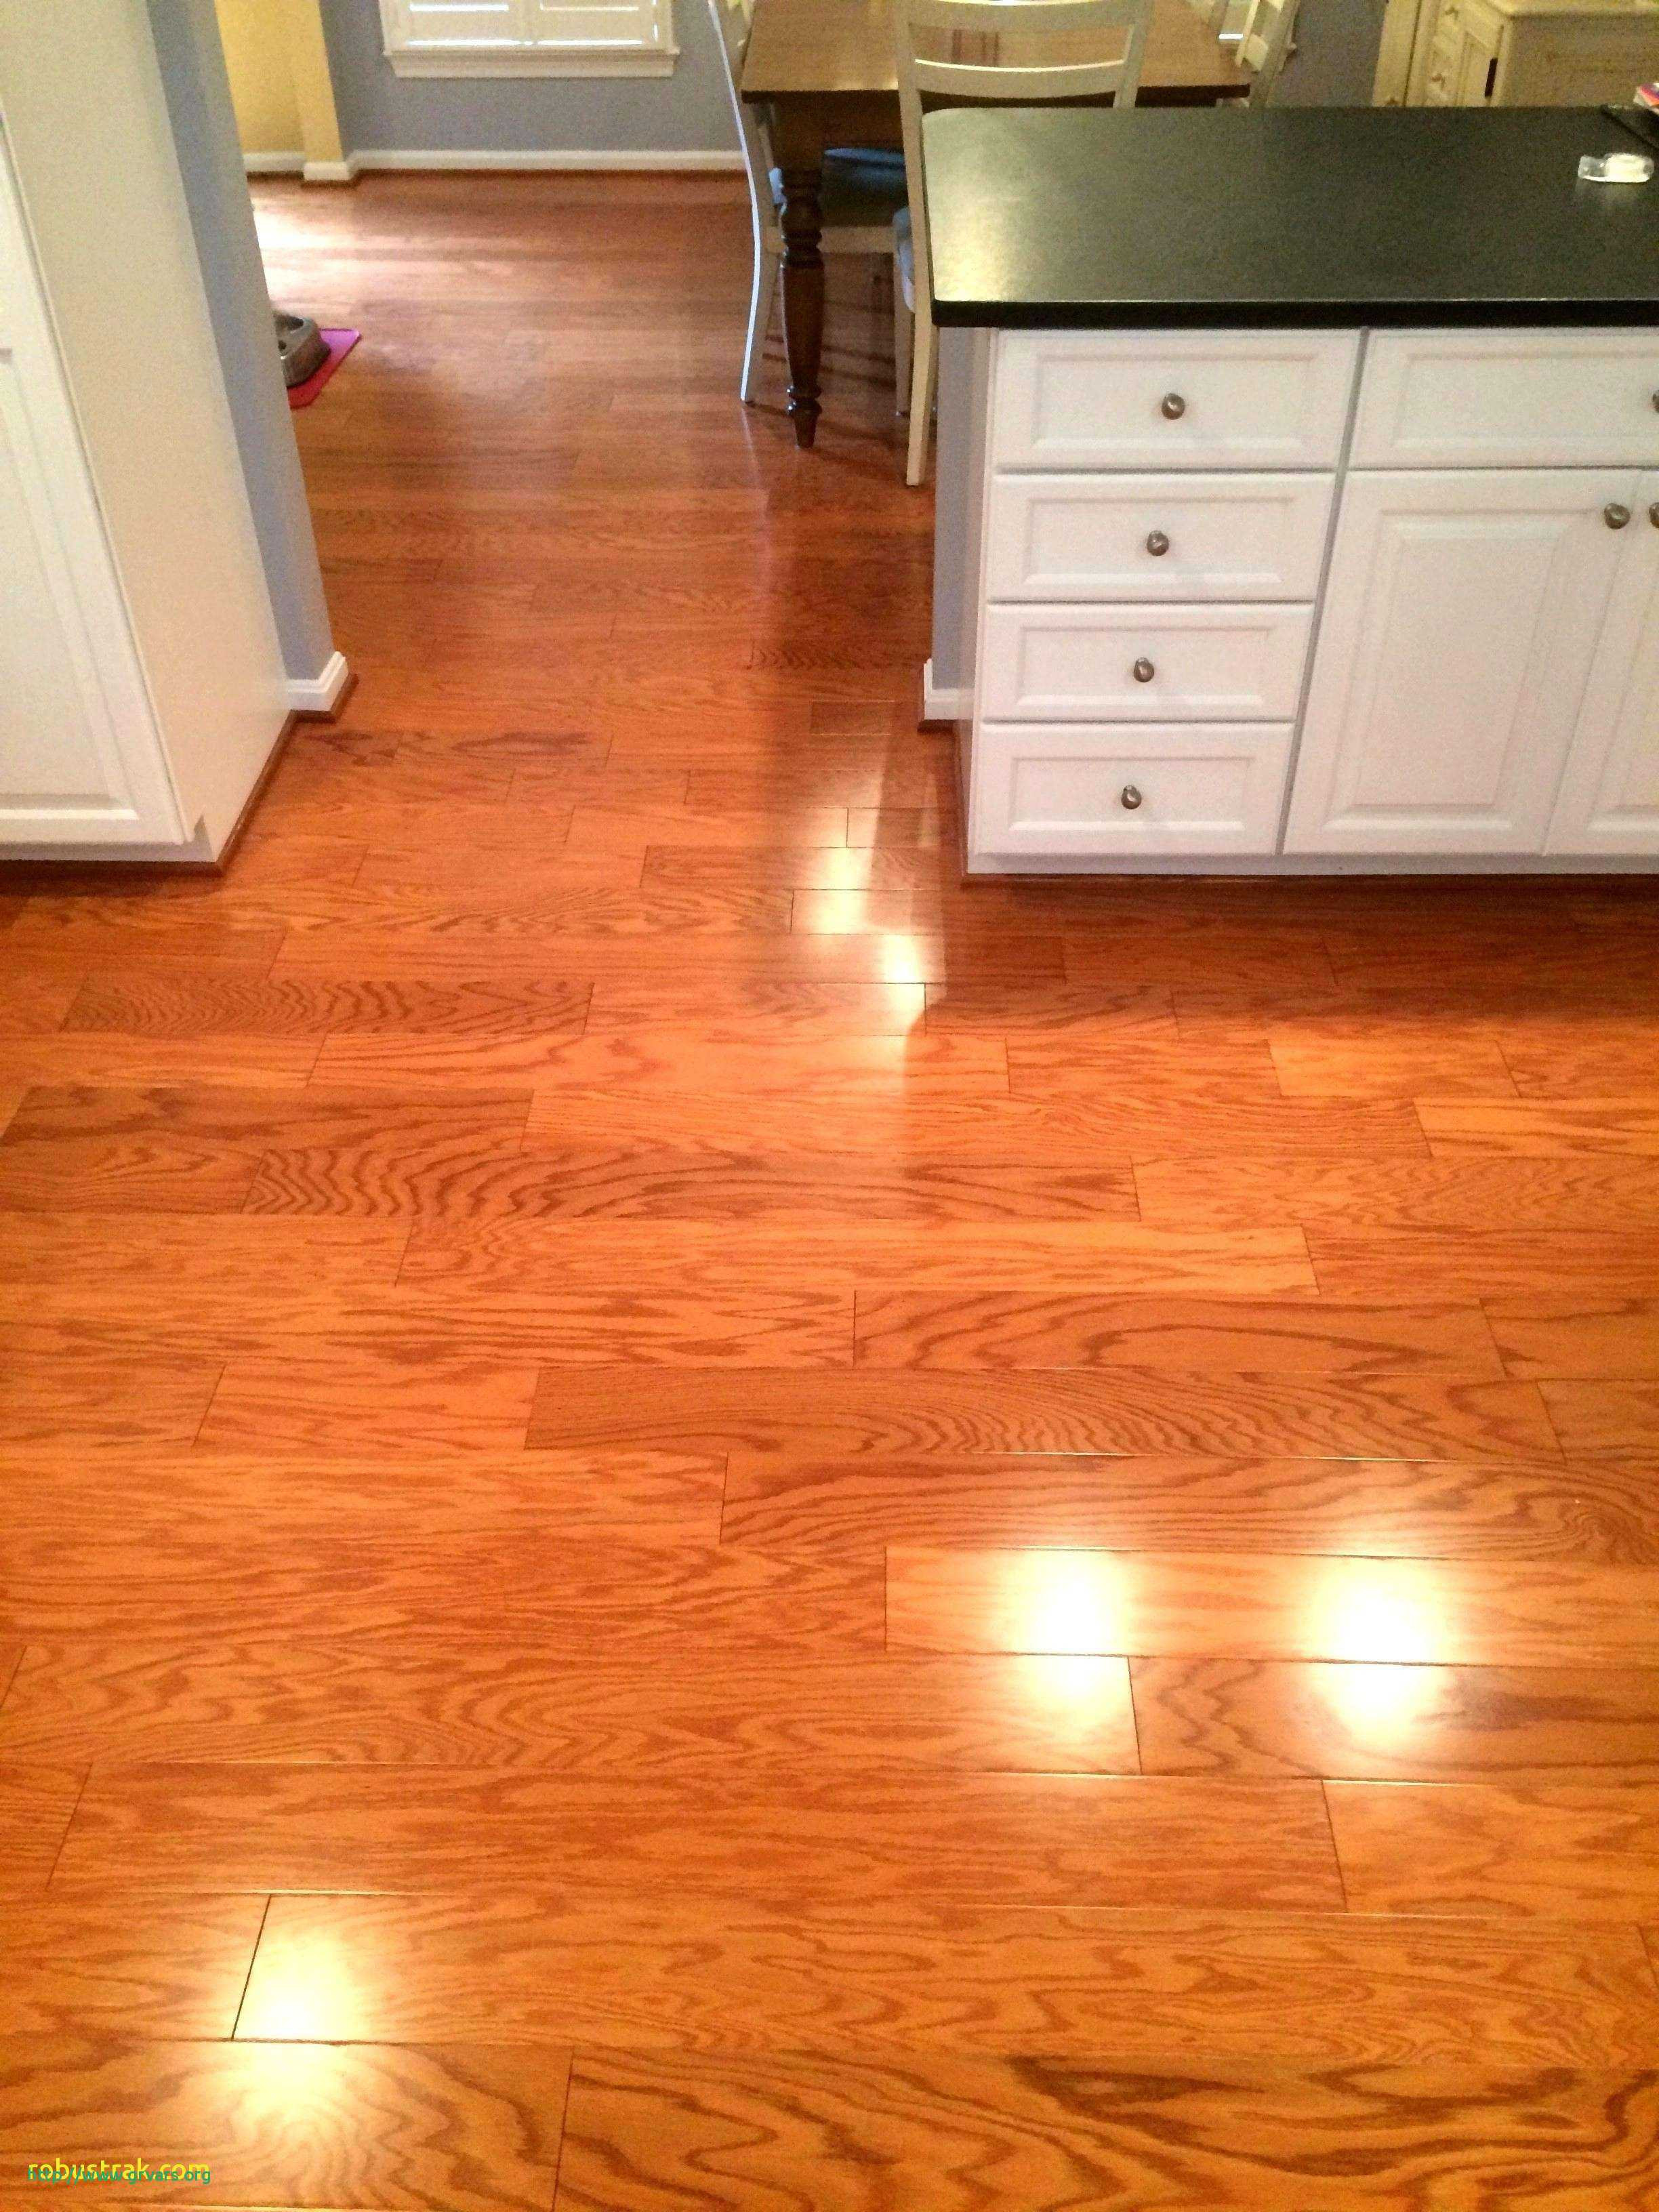 hardwood flooring prices of 20 impressionnant cheapest place to buy hardwood flooring ideas blog throughout 20 photos of the 20 impressionnant cheapest place to buy hardwood flooring